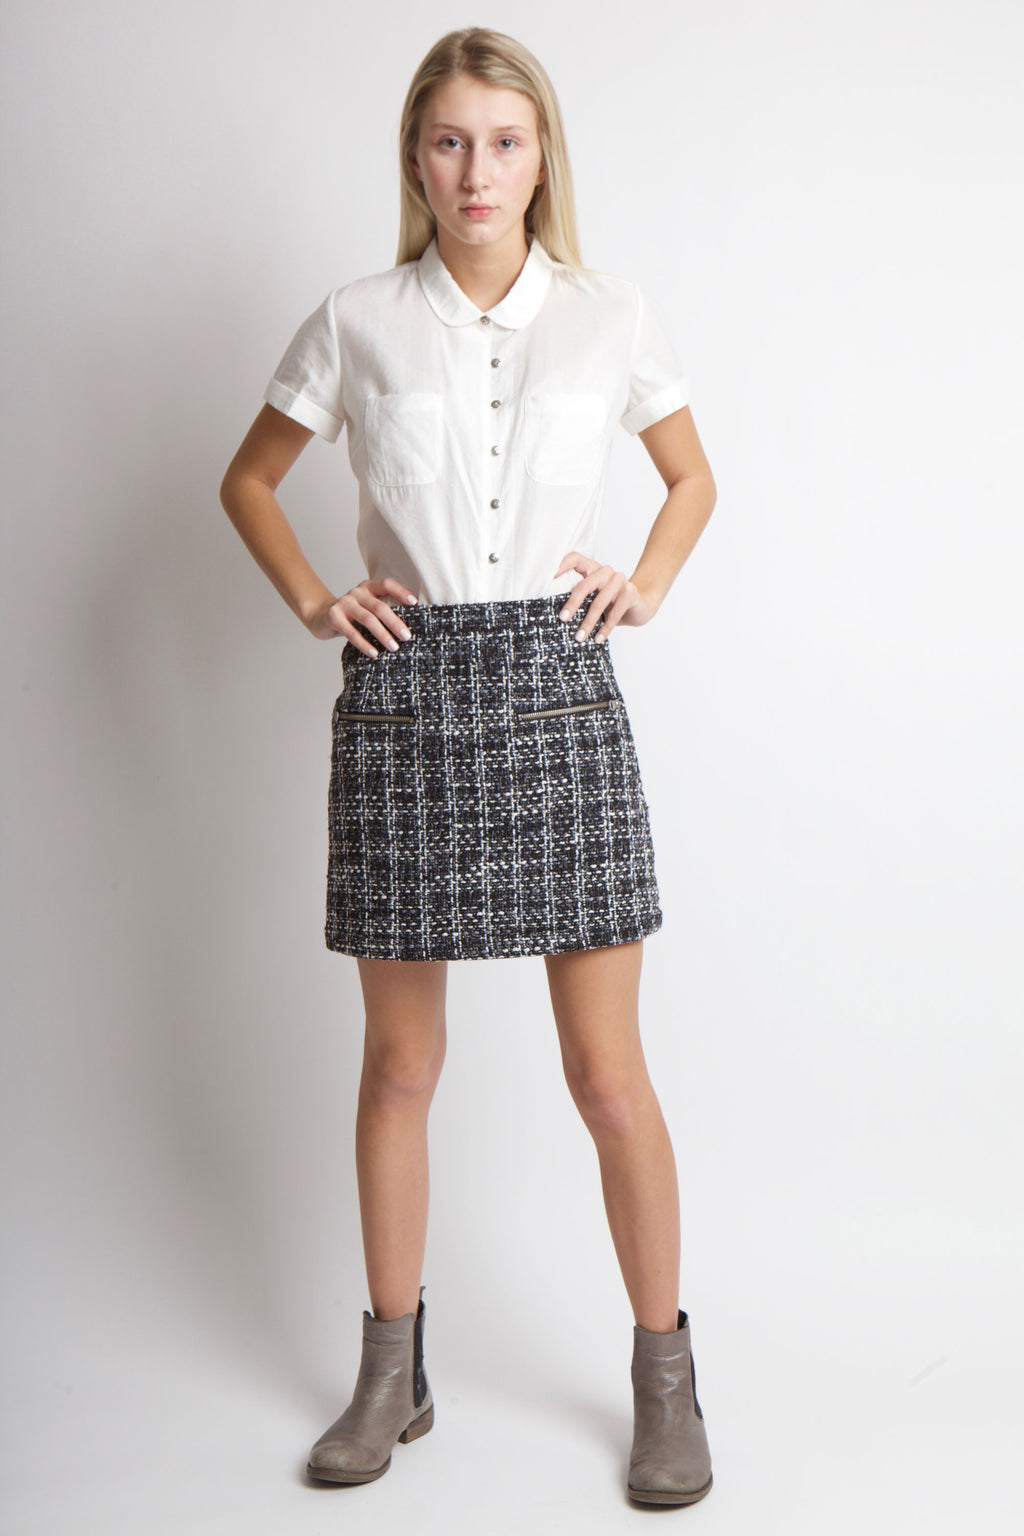 Woman standing with tweed mini skirt, white shirt and grey shoes.